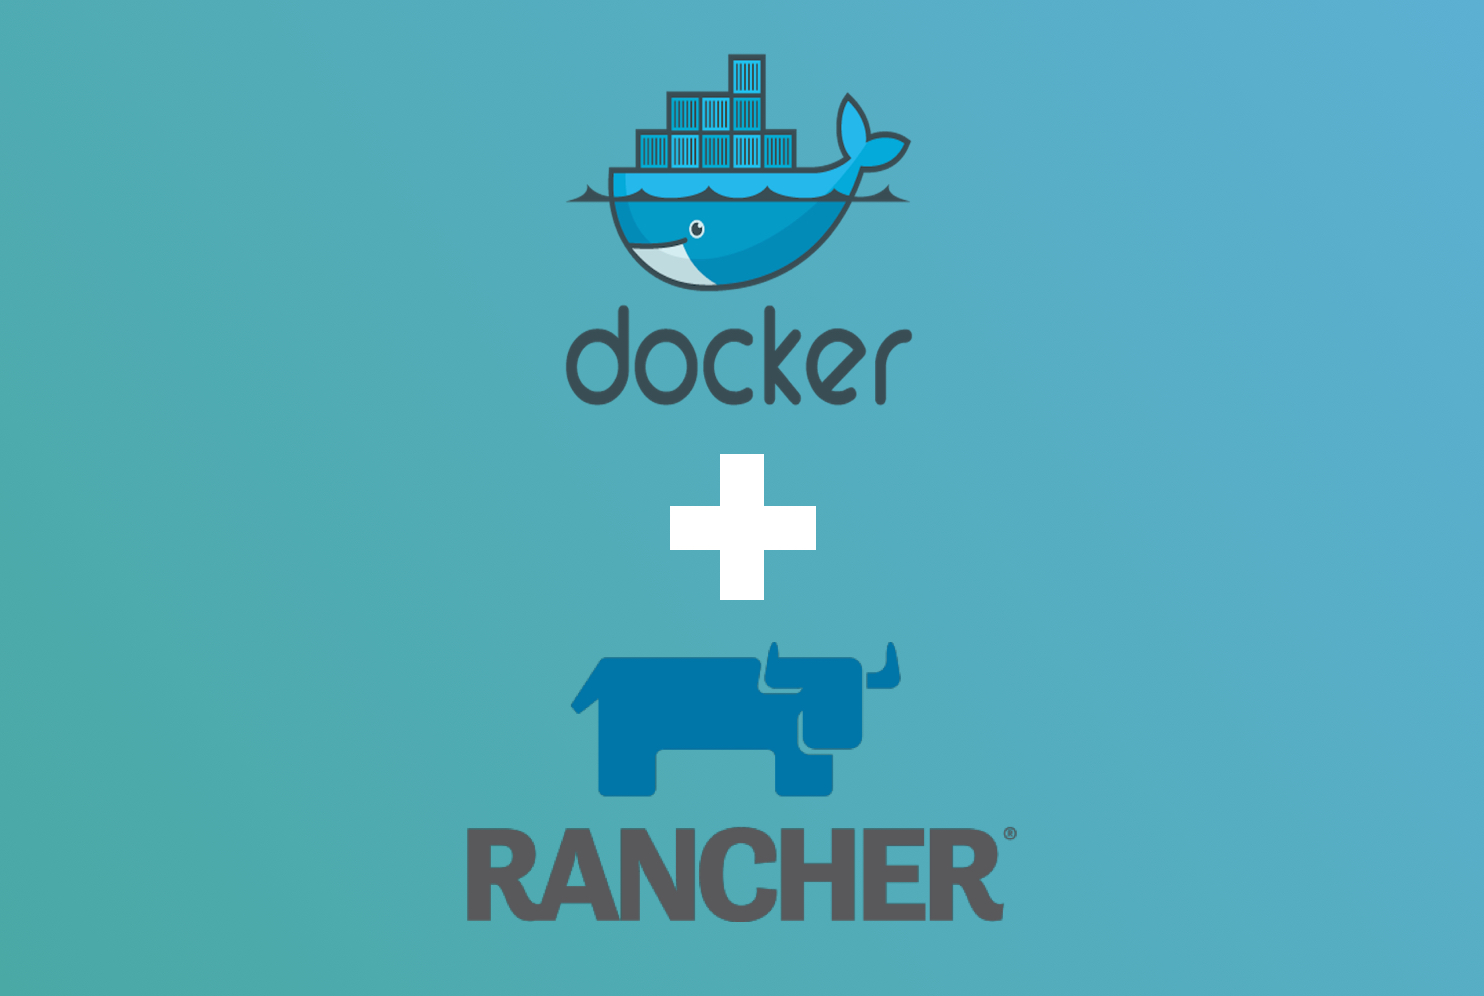 Getting Started w/ Docker & Rancher